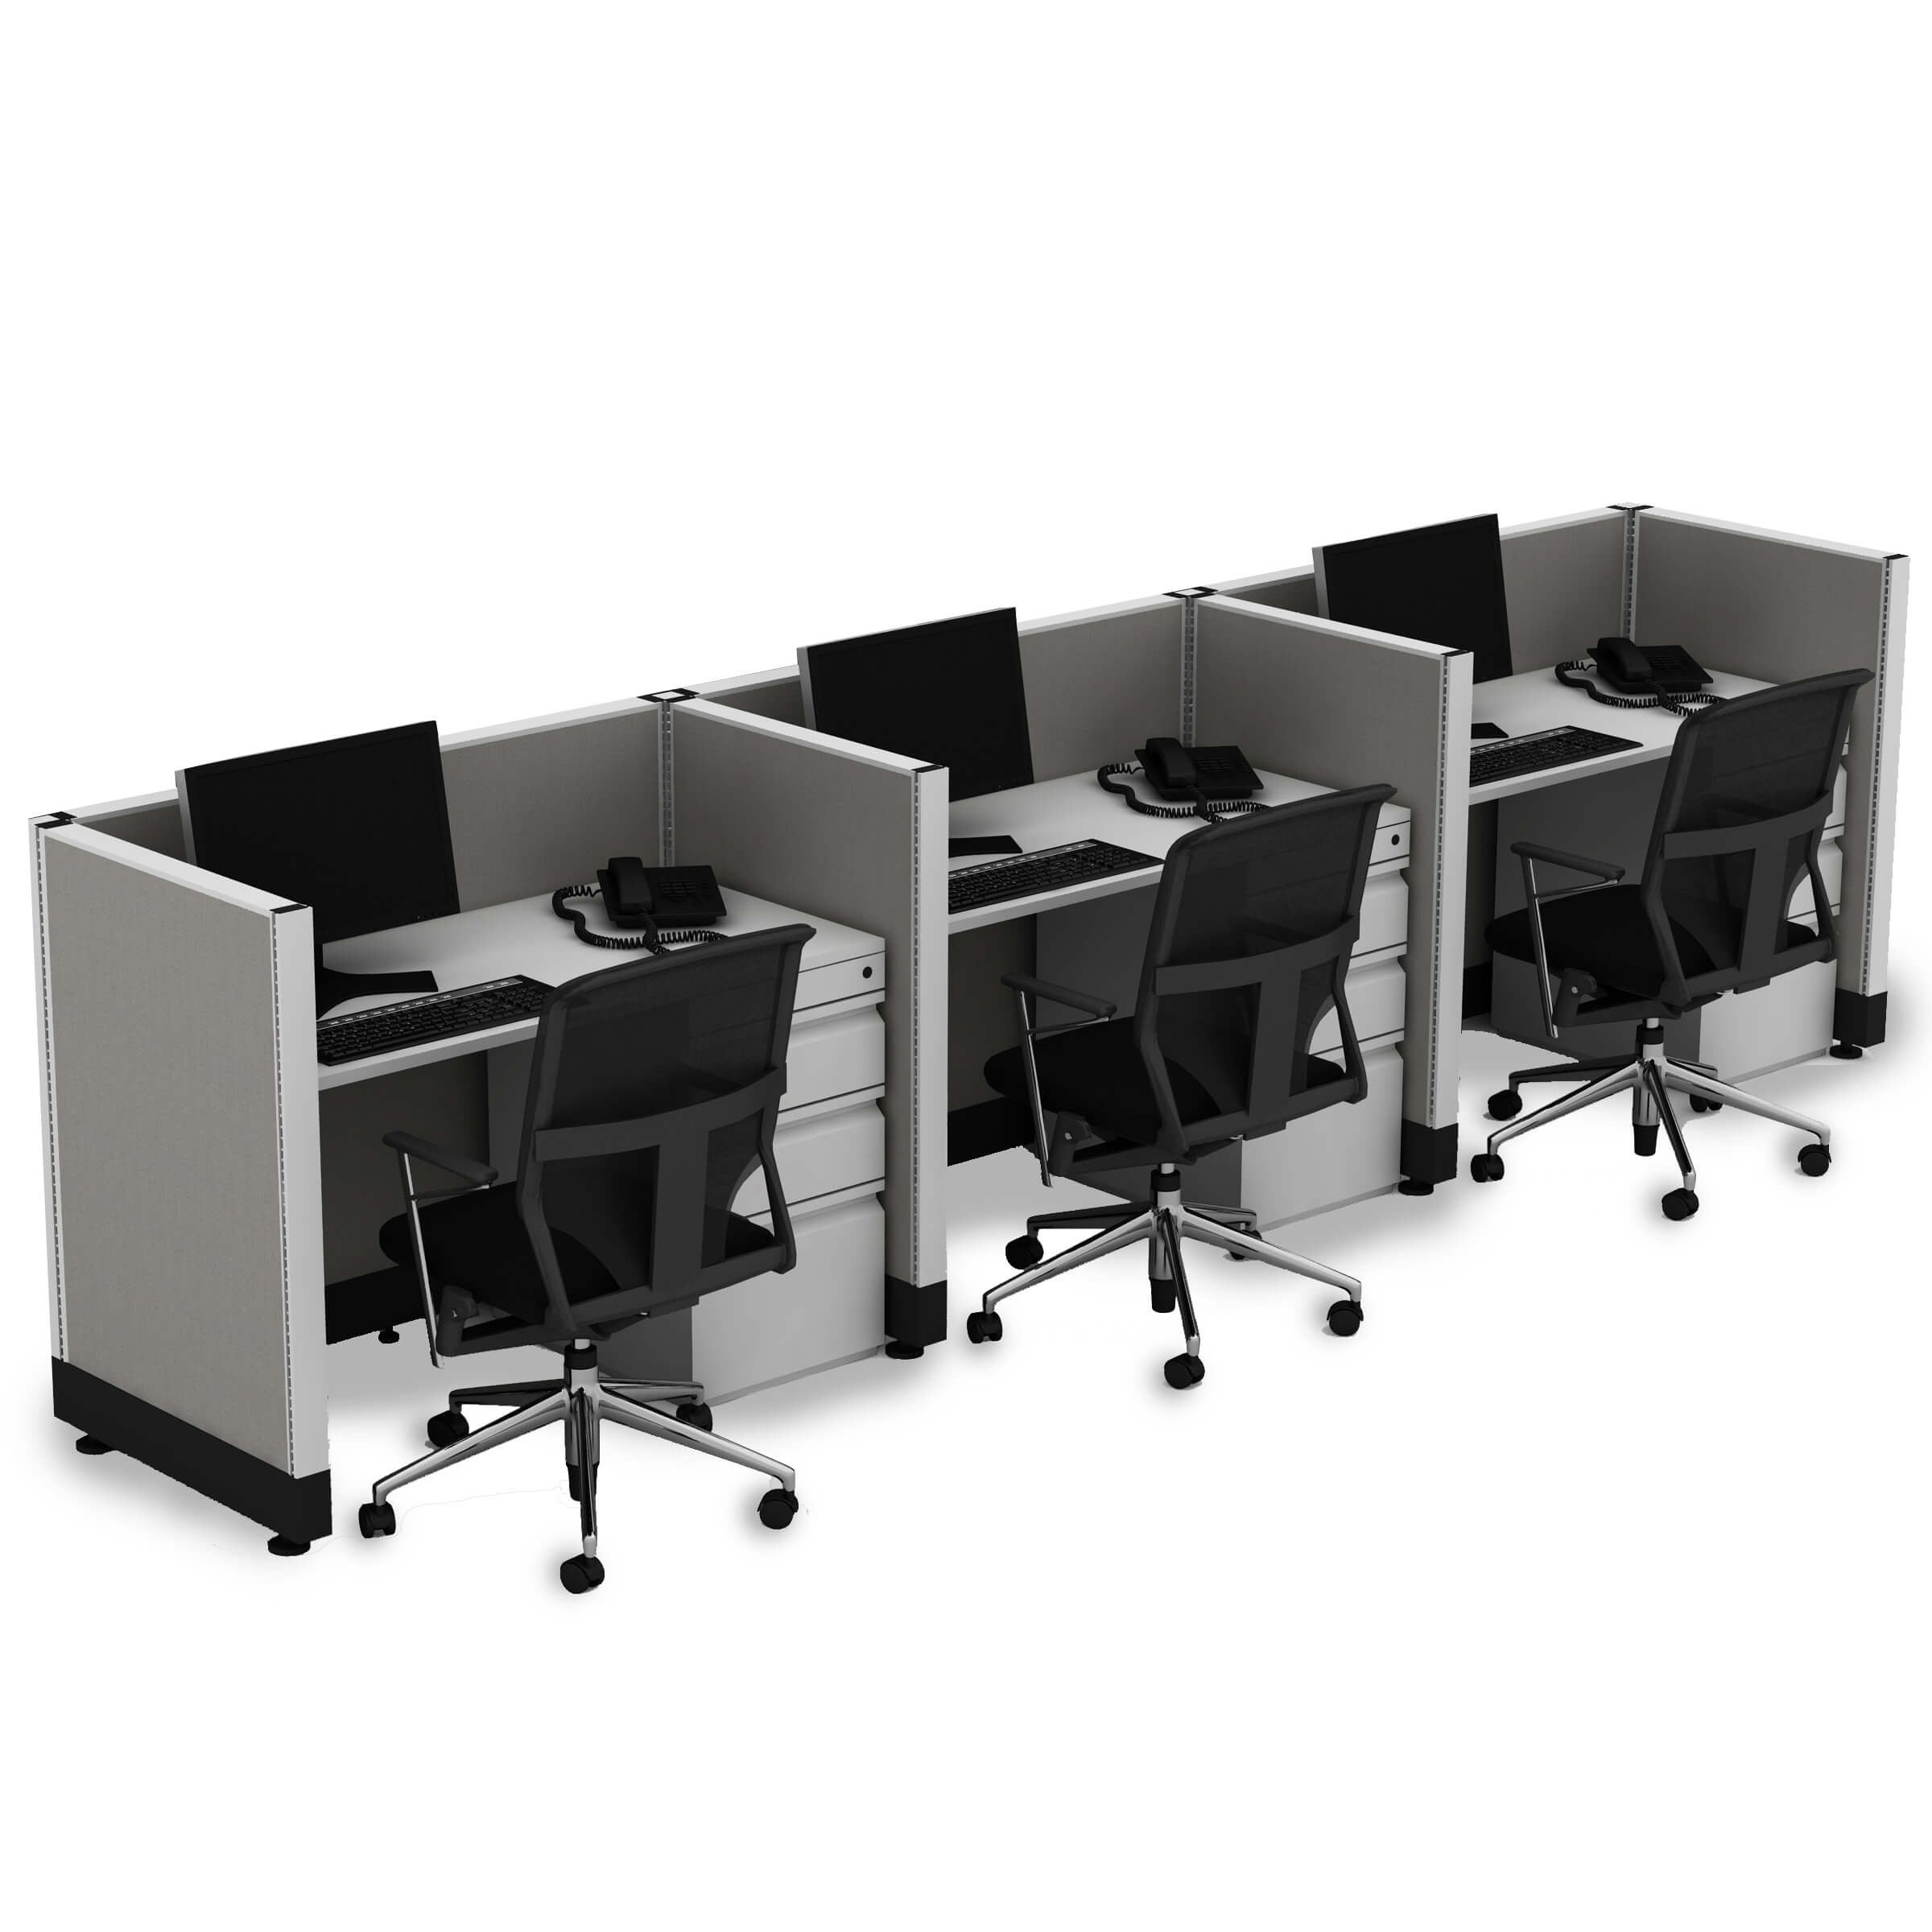 Small Cubicles 39H 3pack Inline Powered (2x3 - Walnut Desk Silver Paint - Assembly Required)